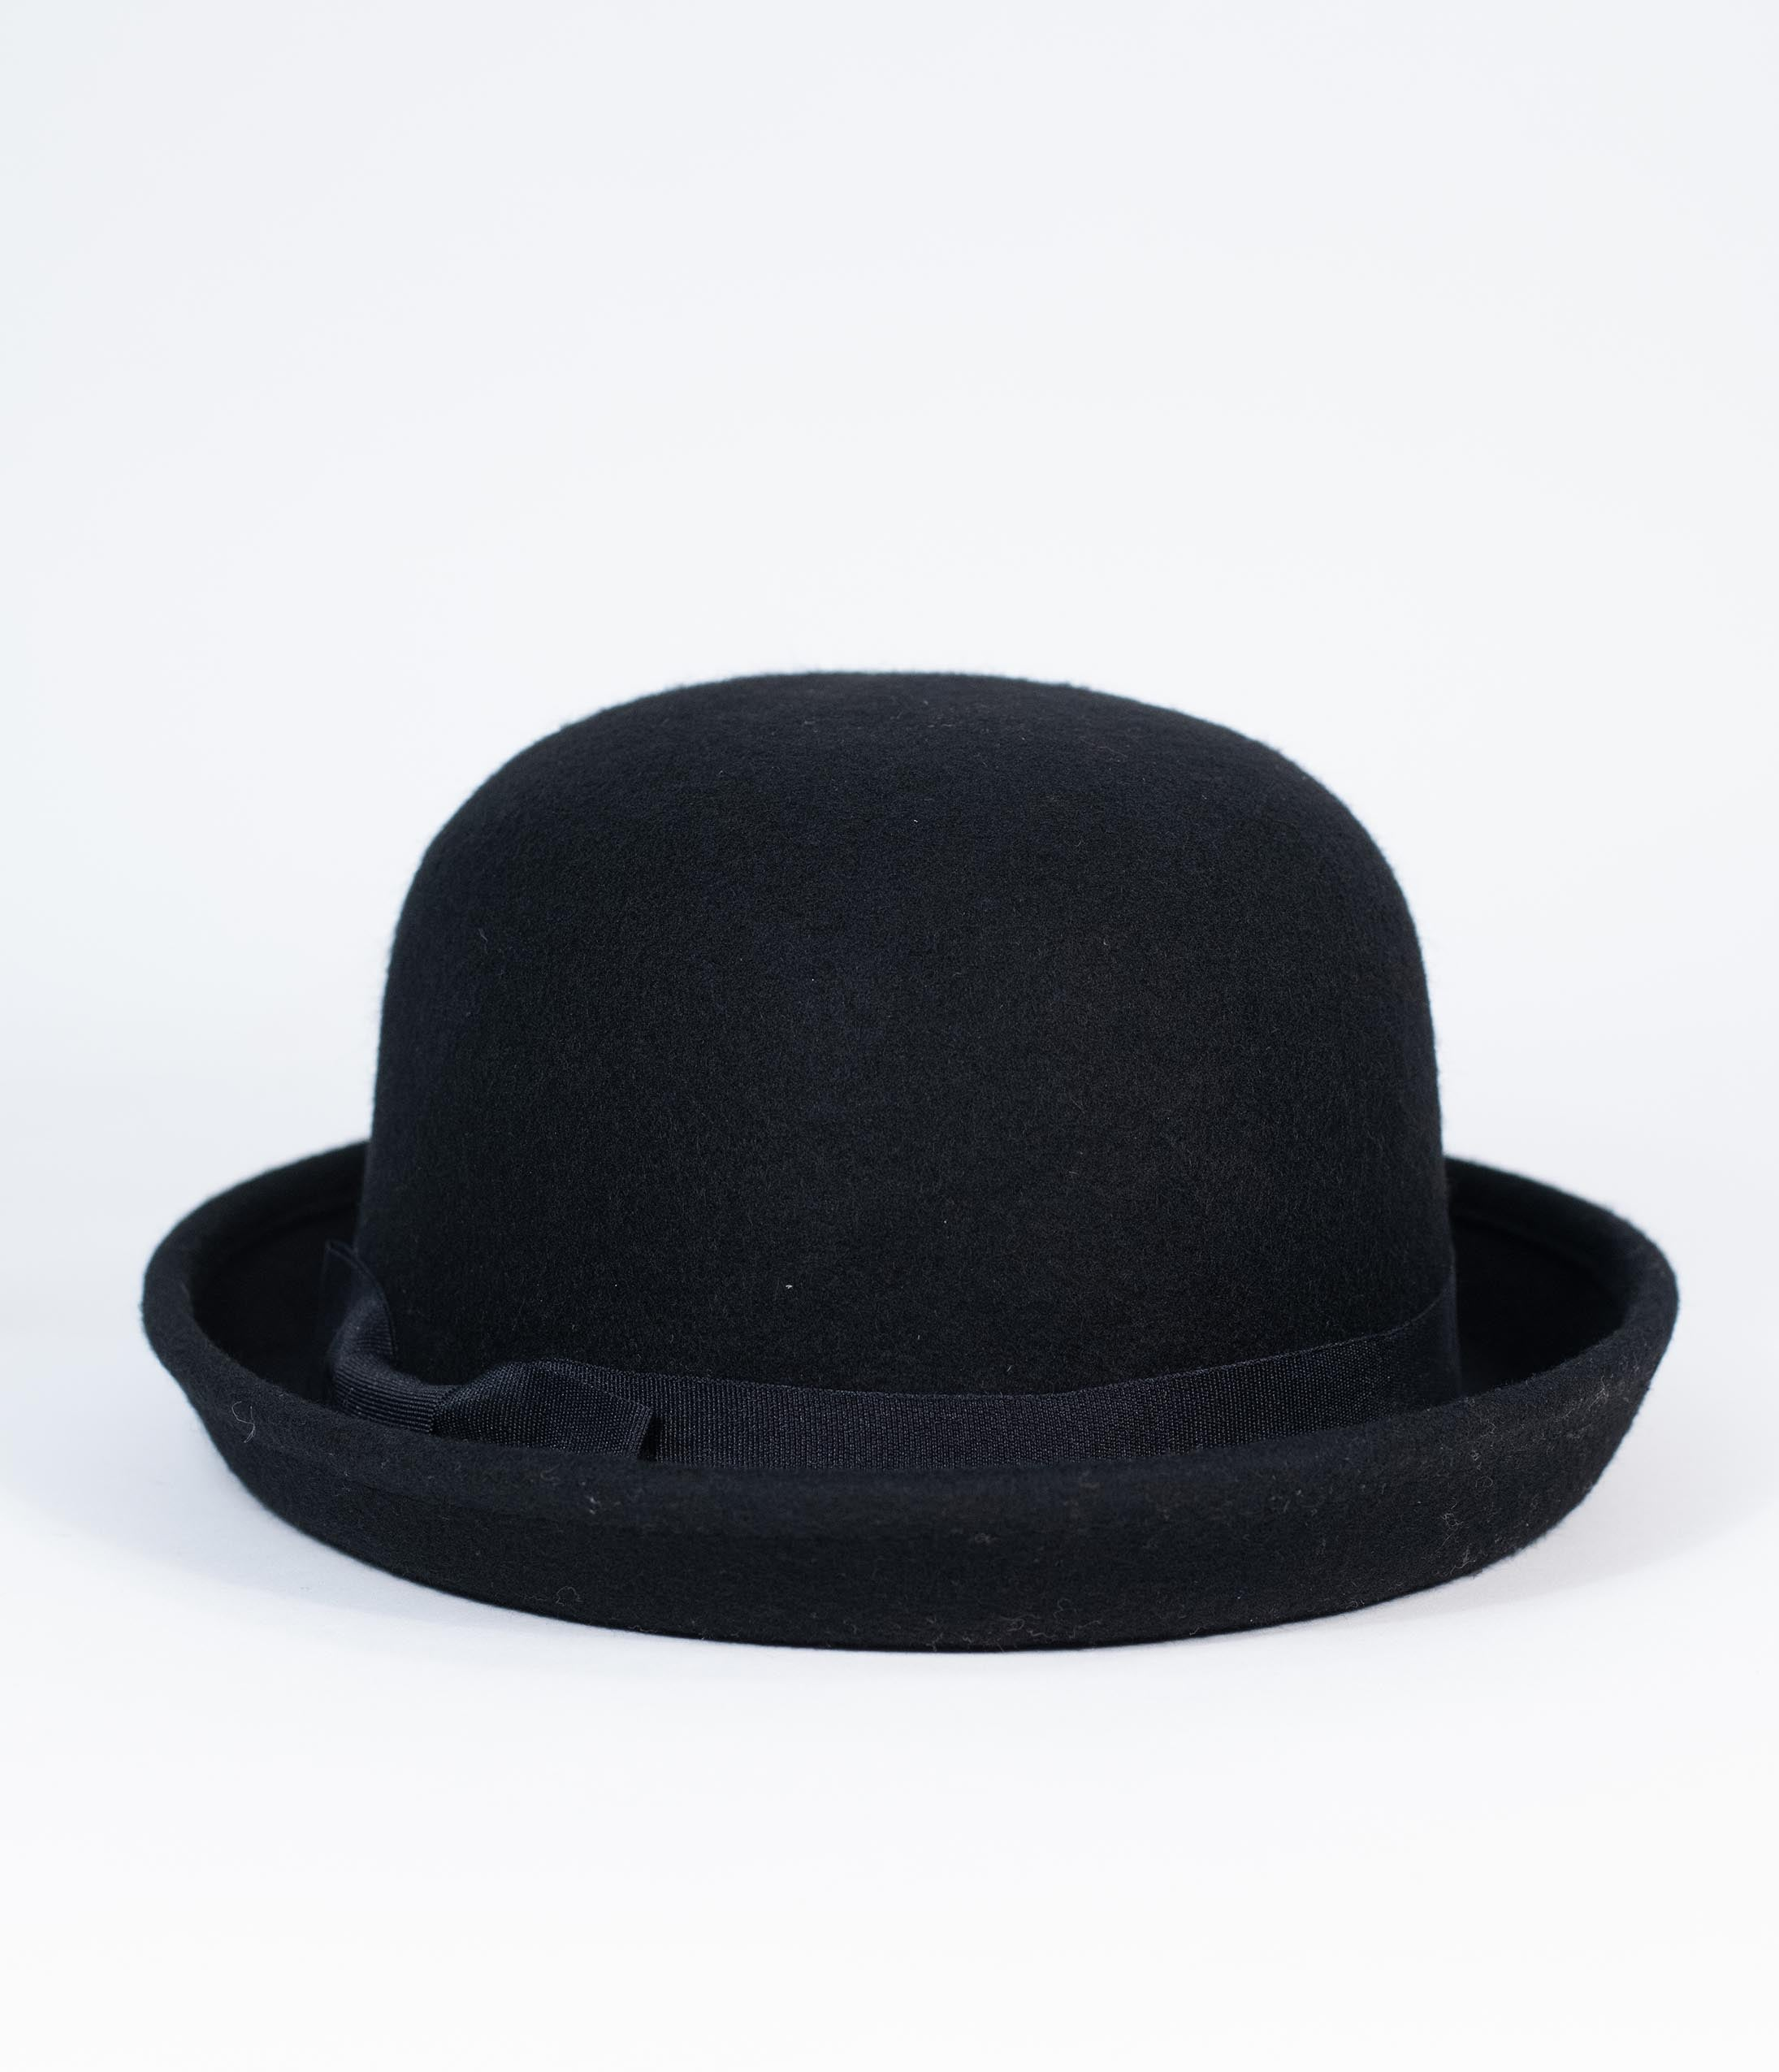 Edwardian Hats, Titanic Hats, Tea Party Hats Retro Style Black Wool Bowler Hat $46.00 AT vintagedancer.com